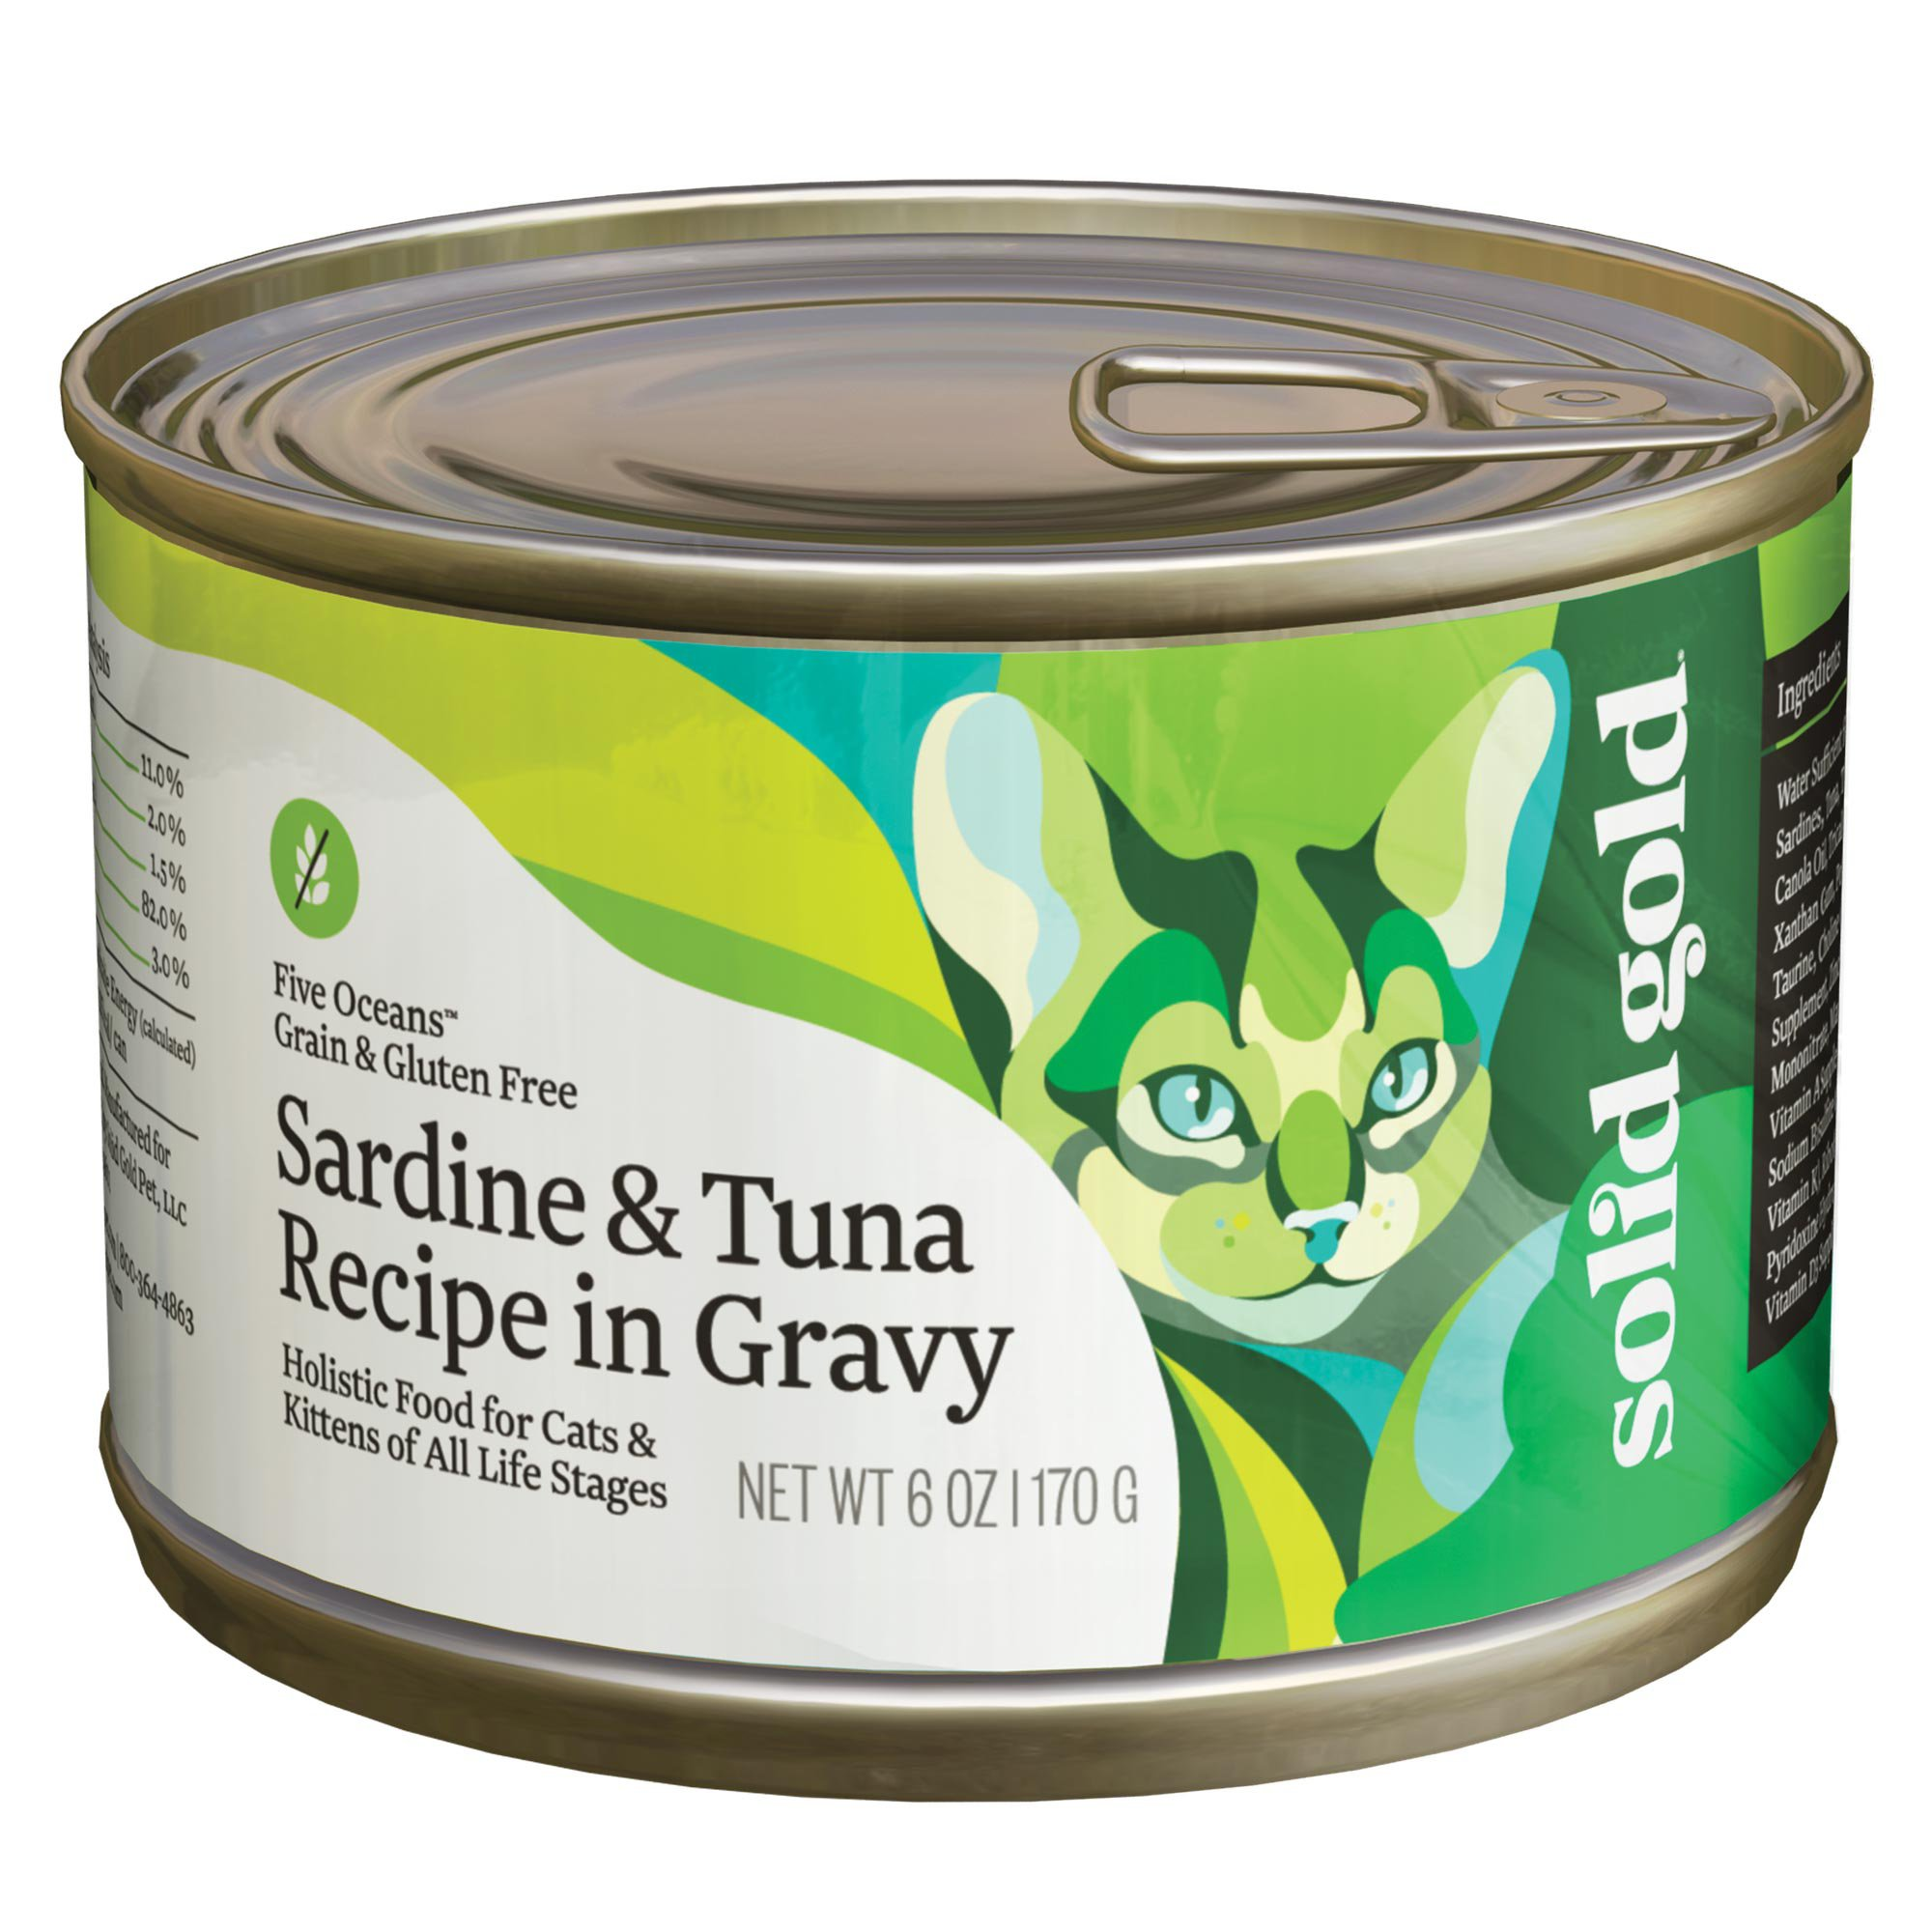 Solid Gold Five Oceans Sardine Tuna In Gravy Holistic Grain Free Canned Cat Food For All Life Stages 6 Oz Case Of 8 Canned Cat Food Cat Food Wet Cat Food